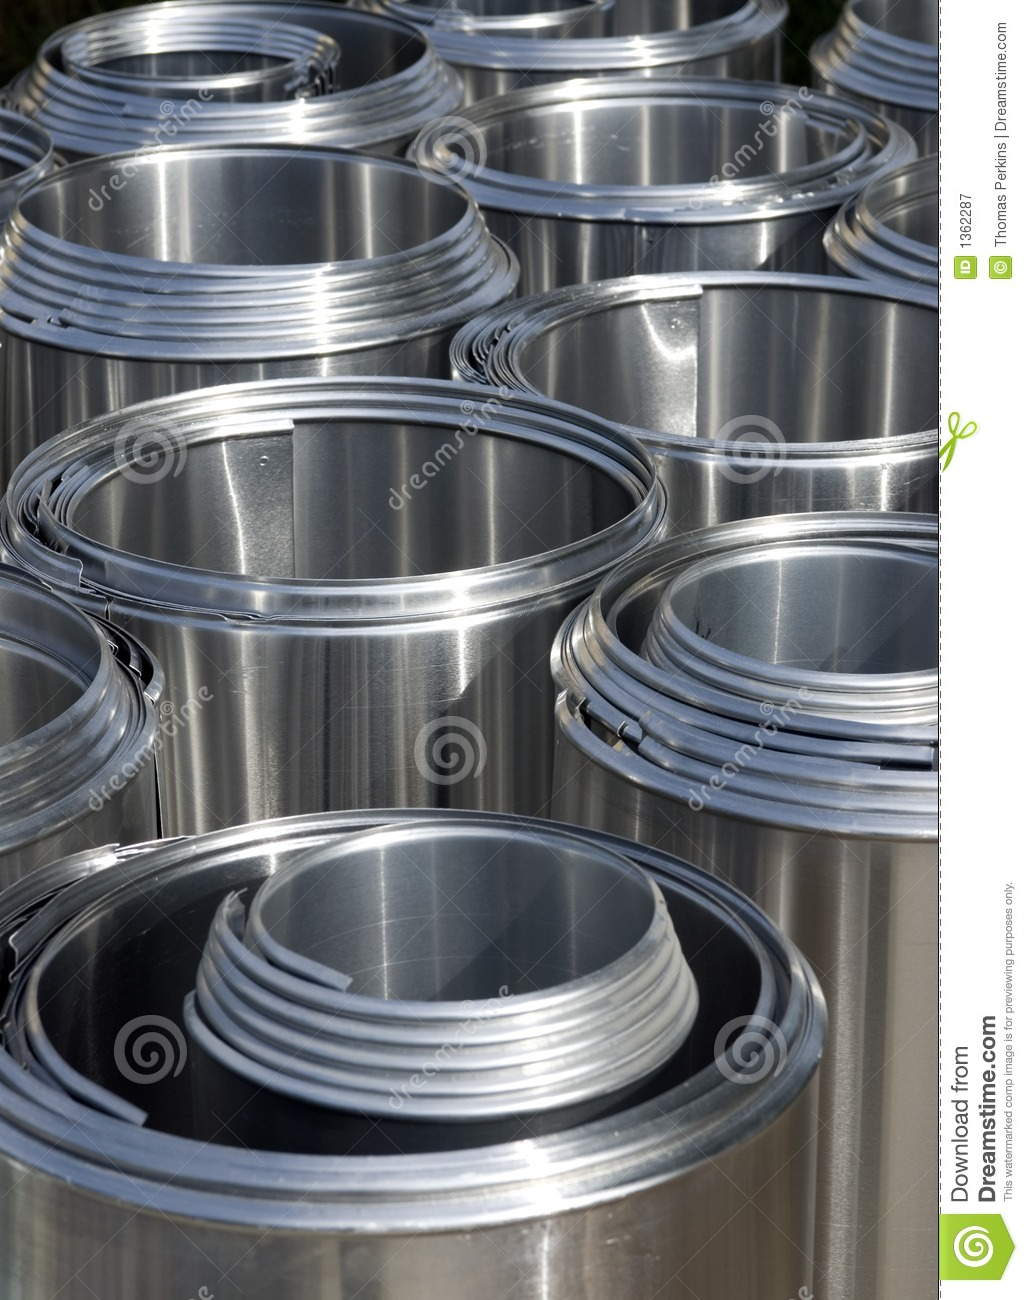 Aluminum Pipe Insulation : Stainless steel pipe insulation covers stock image